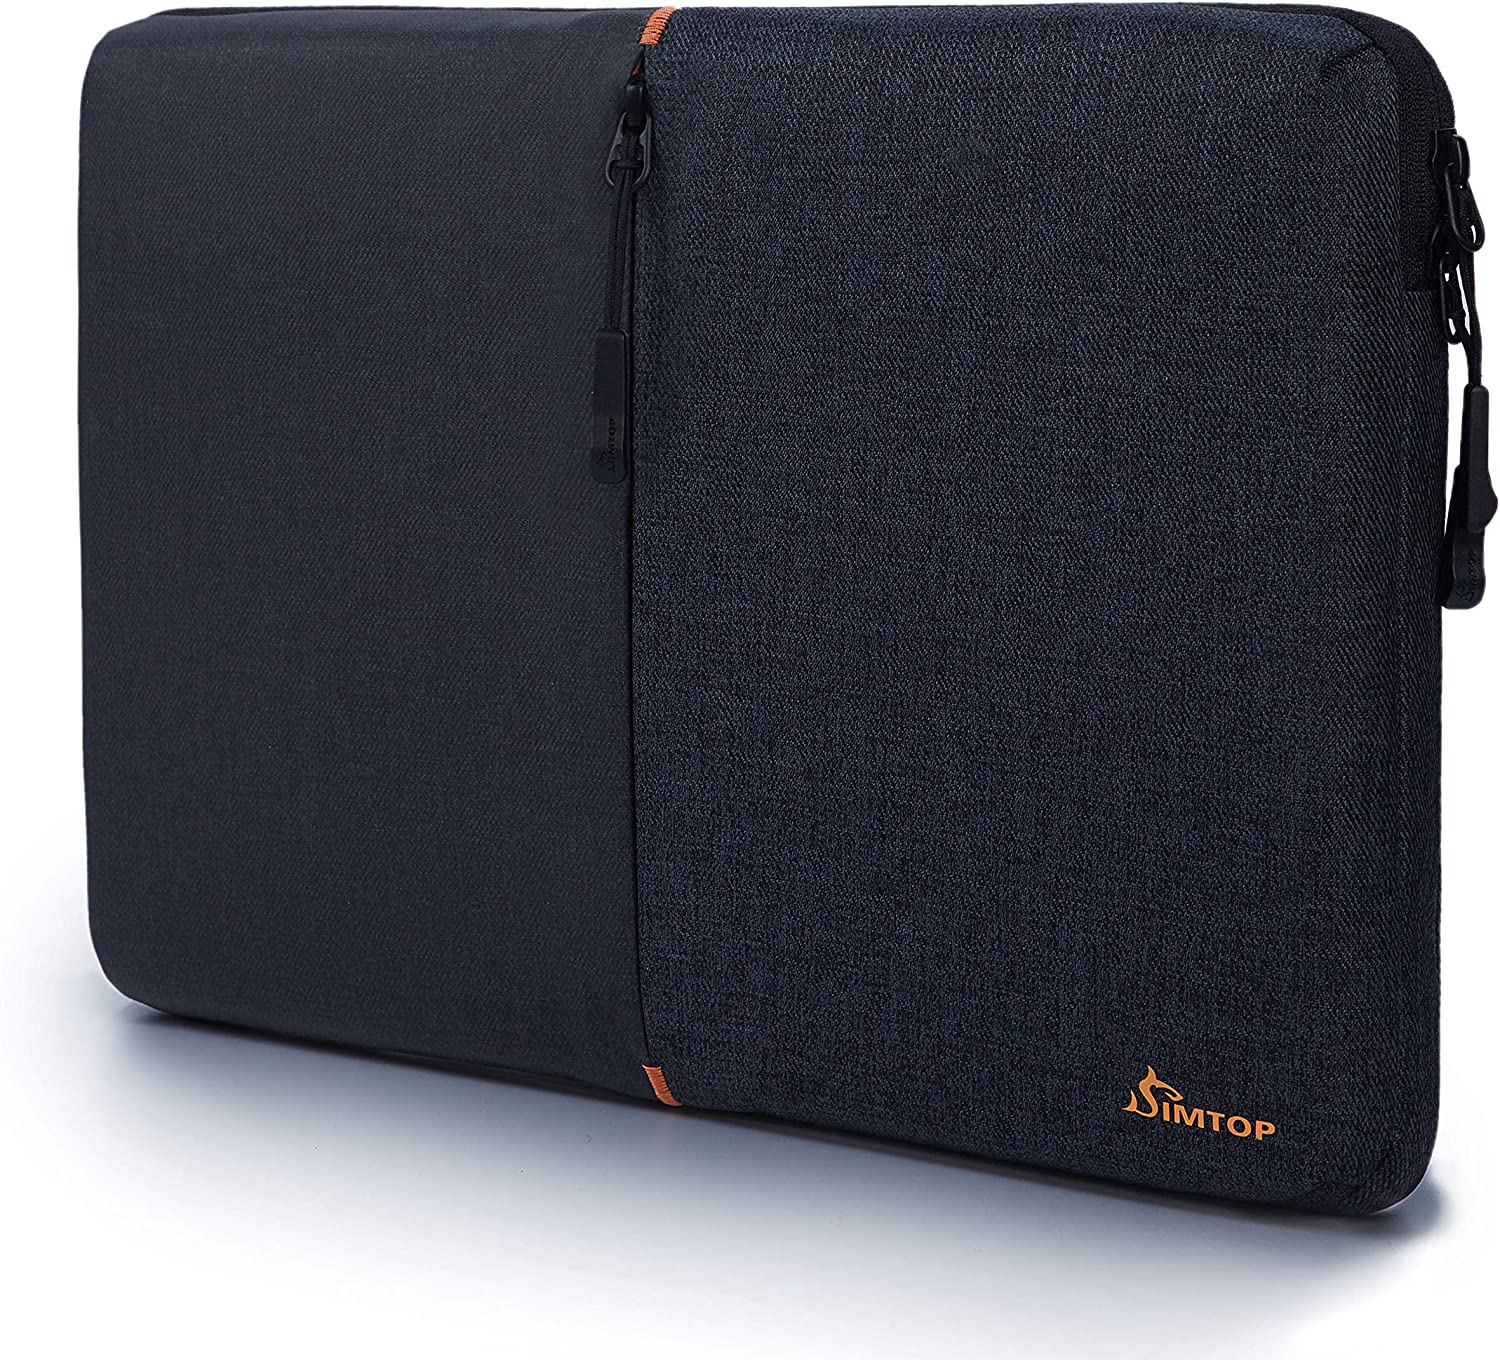 """SIMTOP 360° Protection Laptop Sleeve Case Bag Compatible with 14"""" Lenovo ThinkPad Dell HP ChromeBook, 15"""" New MacBook Pro USB-C Touch Bar A1990 A1707 (Black)"""